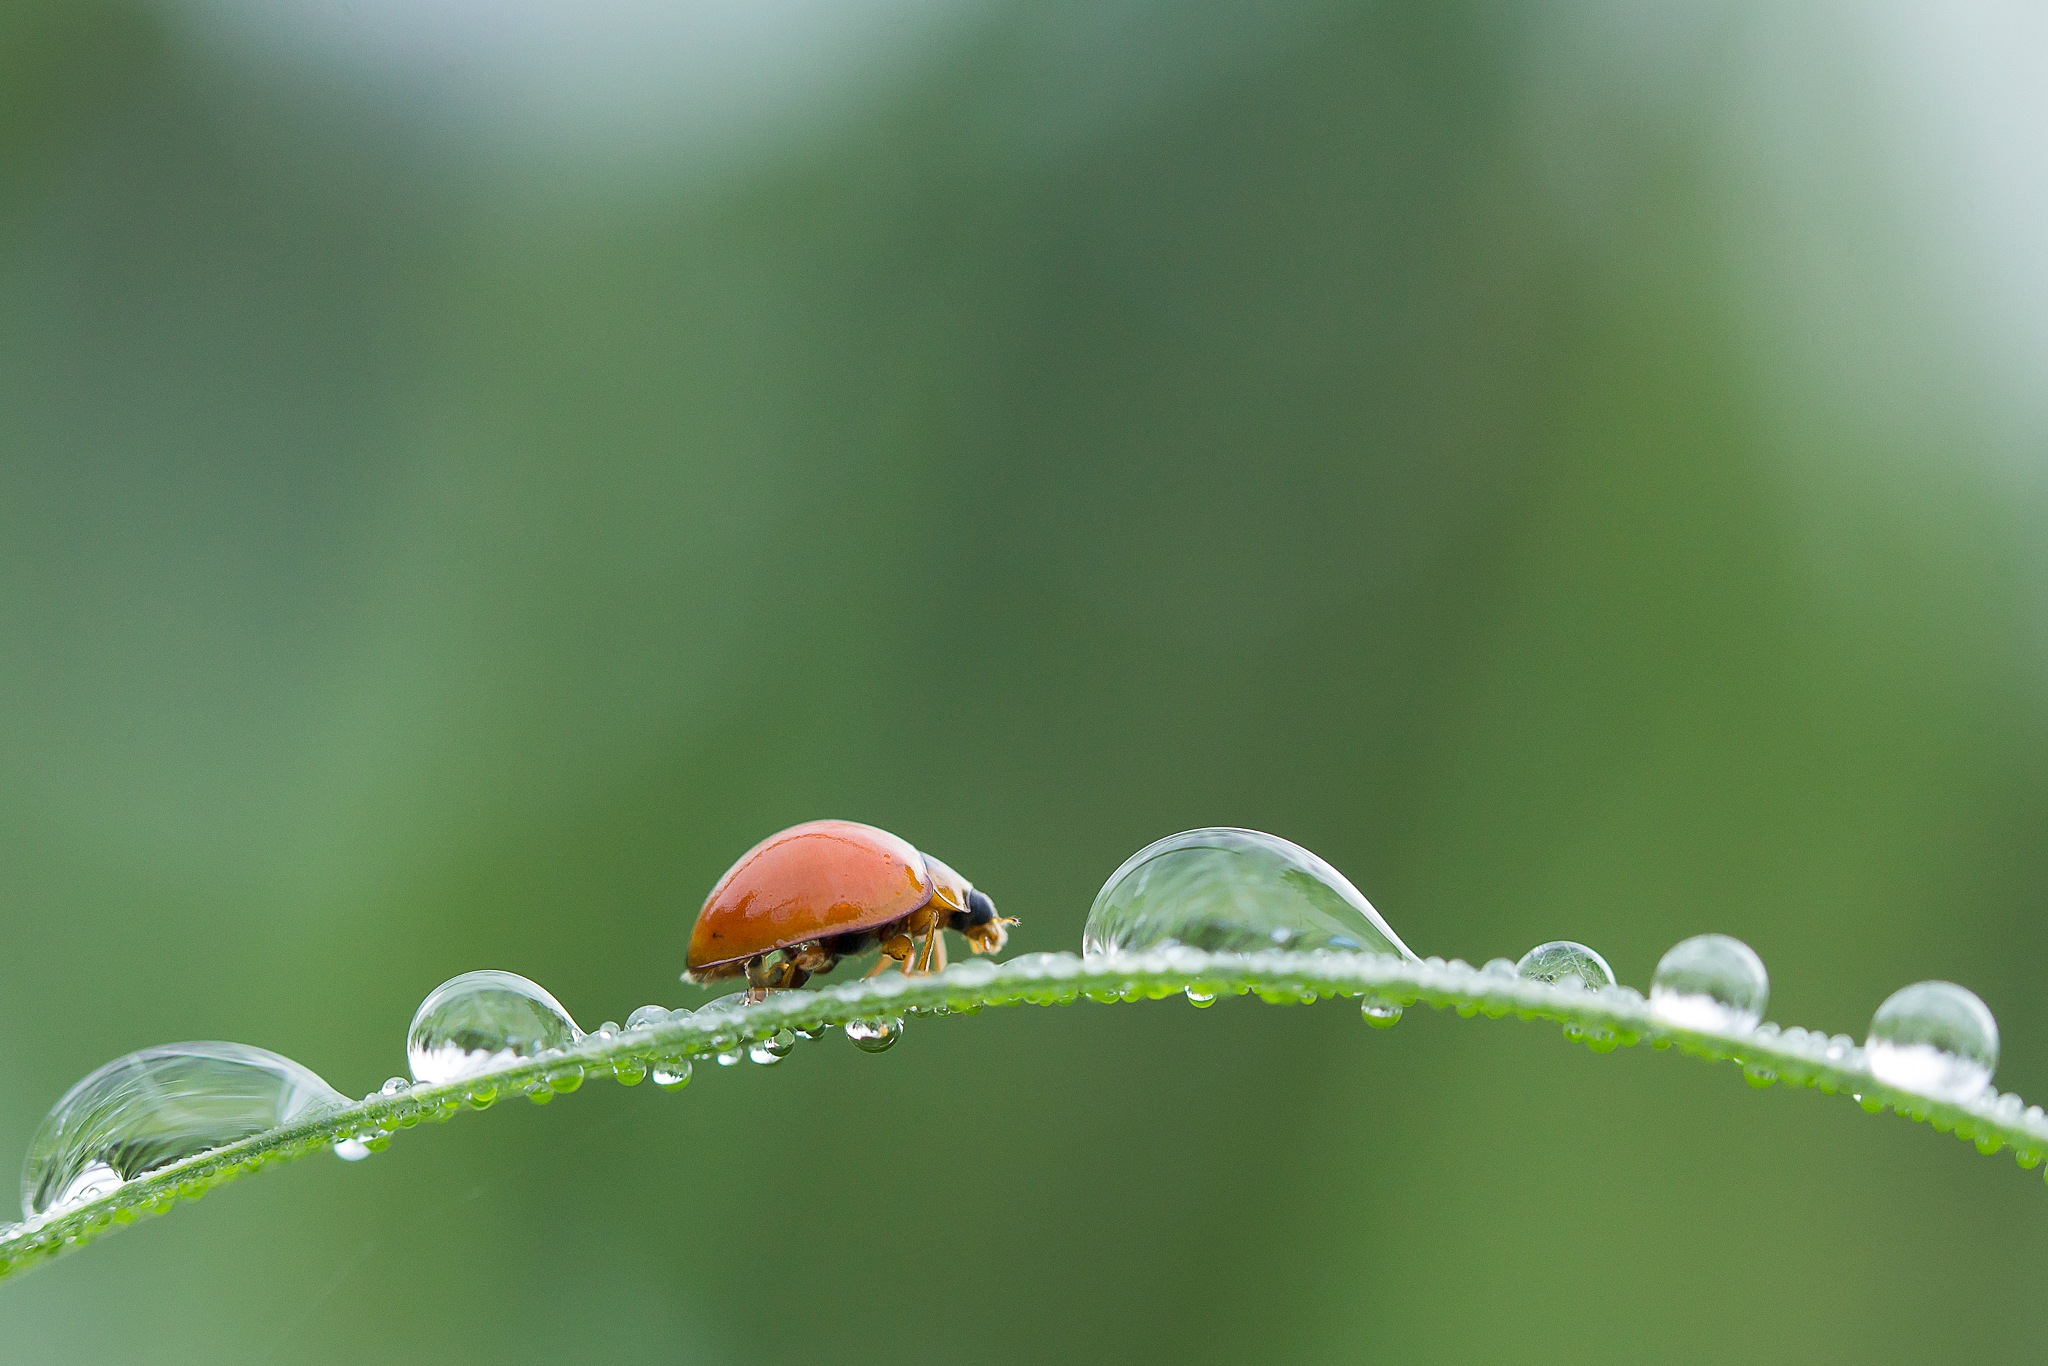 Bug And Water Droplets 180921A by carrot9817